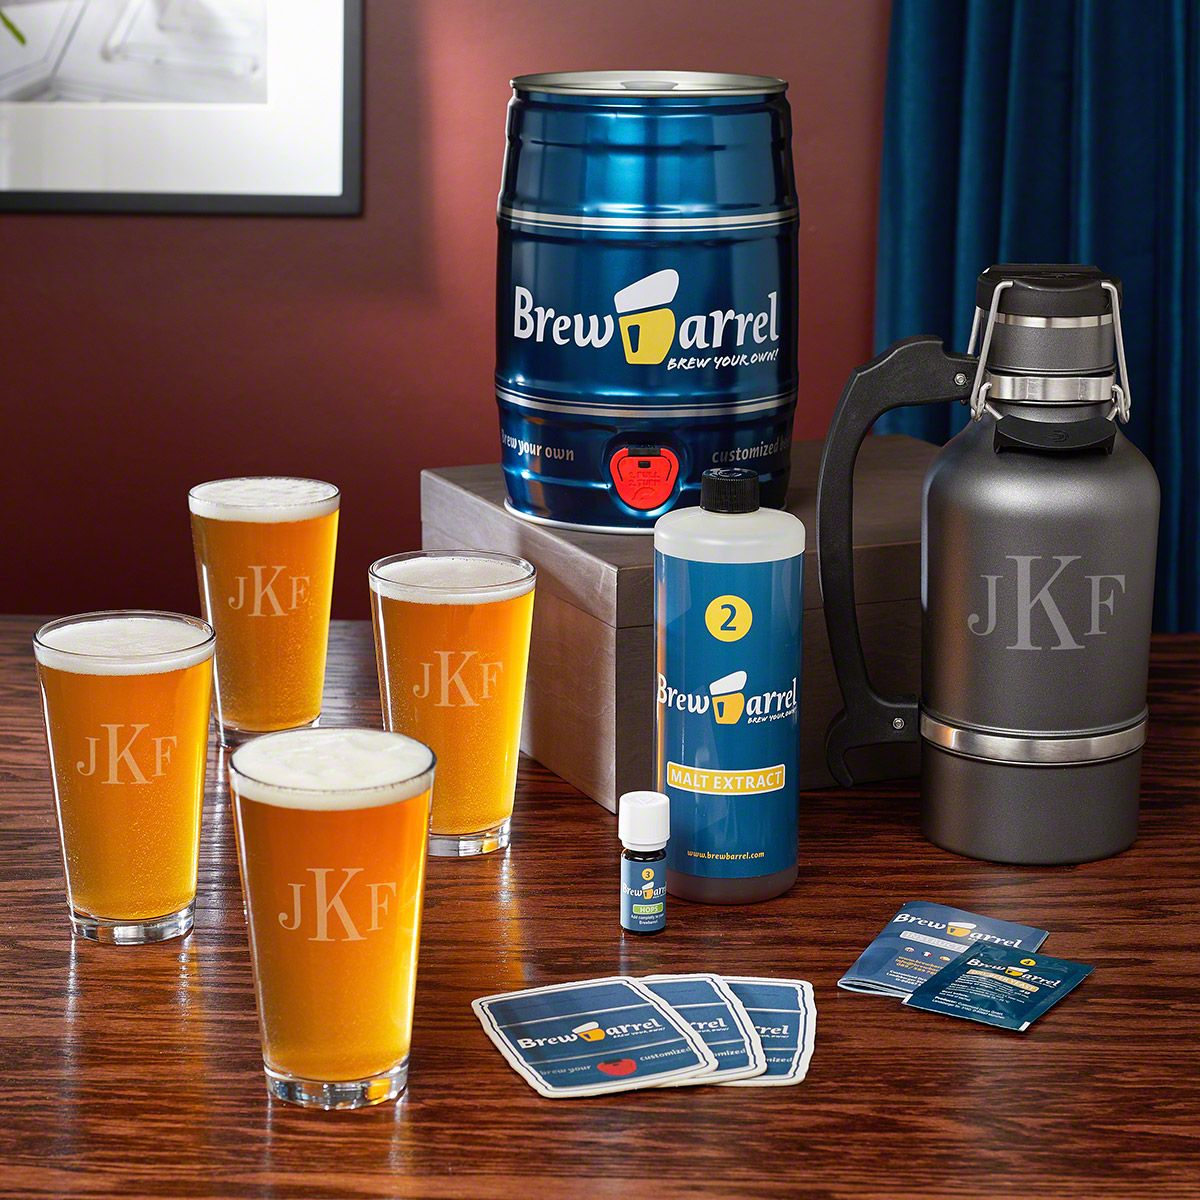 Brew Barrel Beer Making Kit with Monogram Glasses and Growler